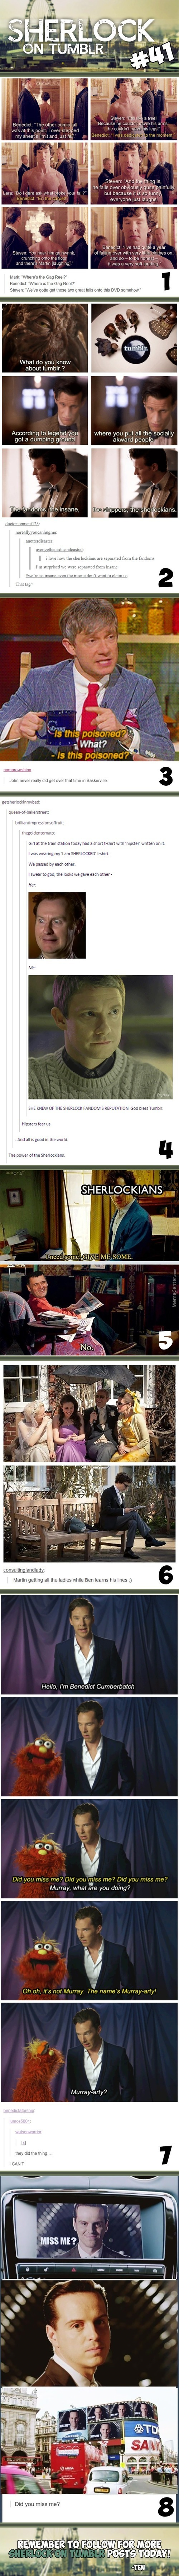 Sherlock On Tumblr #41